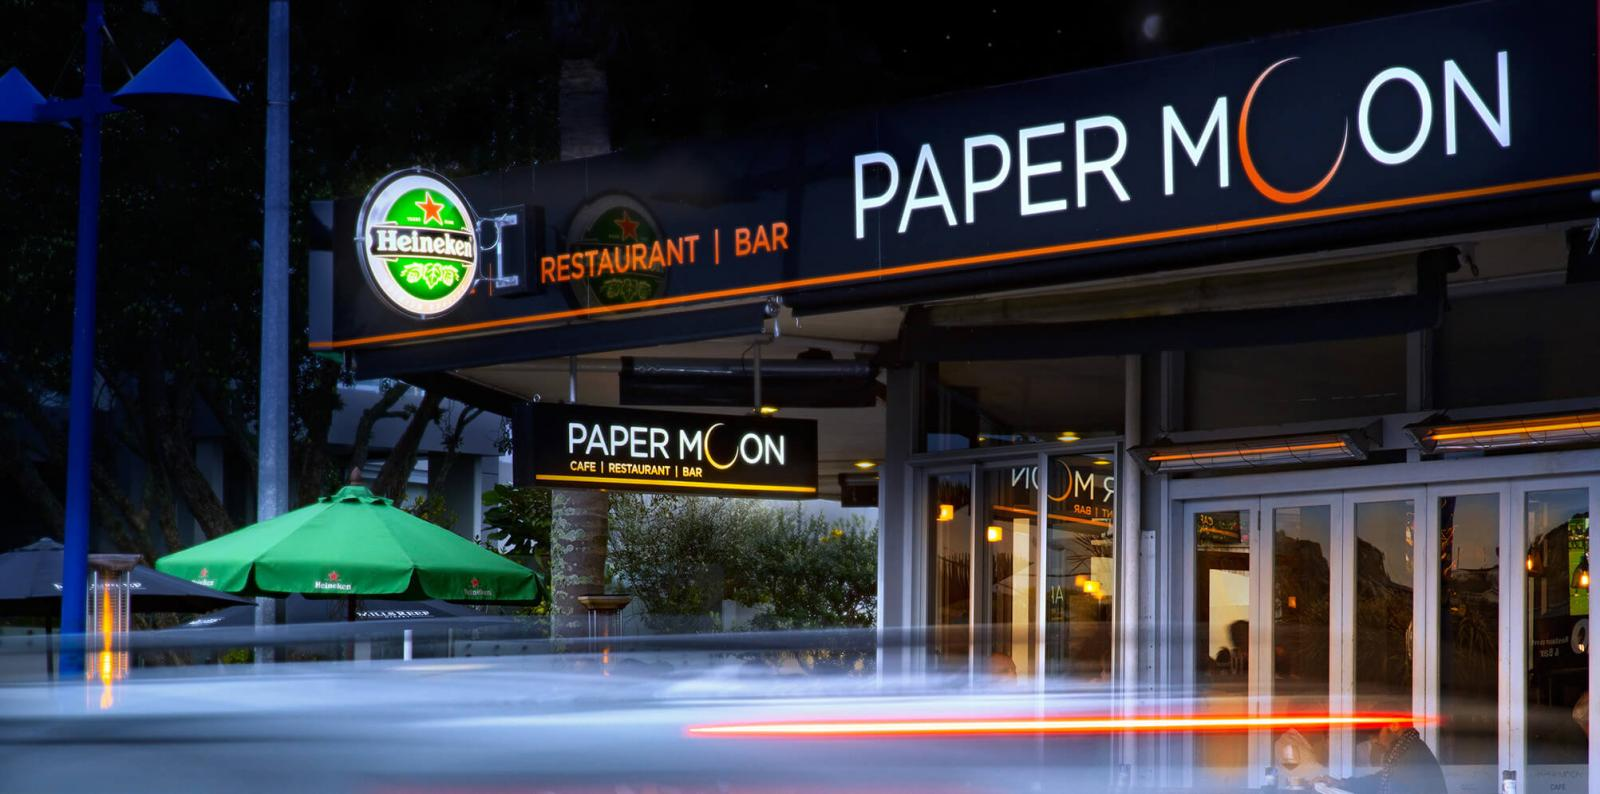 Paper Moon Cafe and Bar